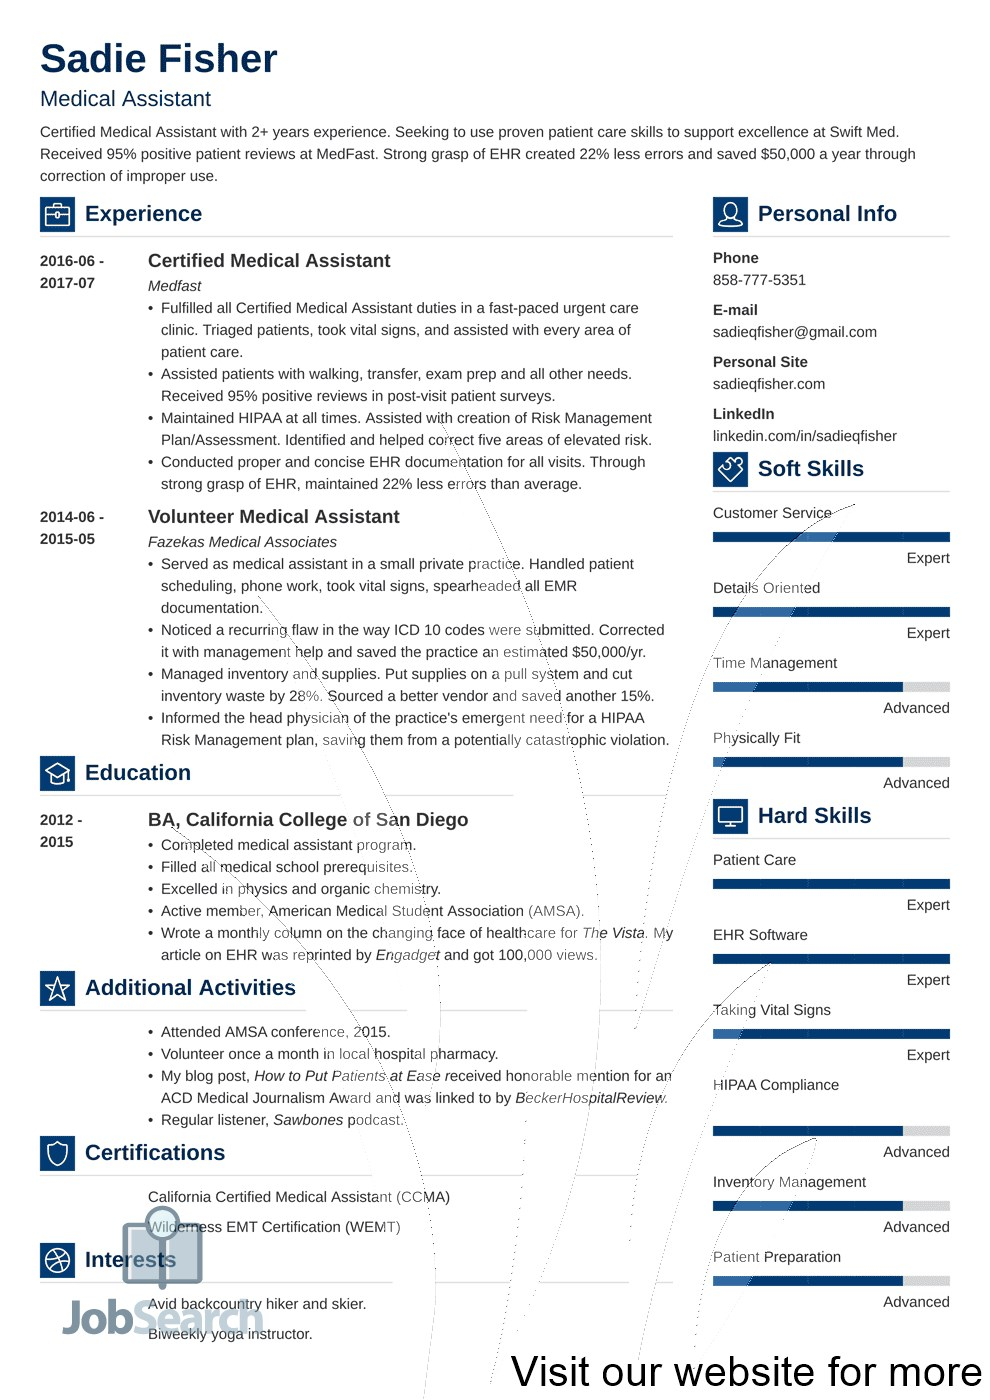 Healthcare Resume Templates 2020 Healthcare Resume Templates Healthcare Resume Templat Resume Design Template Free Resume Design Template Resume Template Free